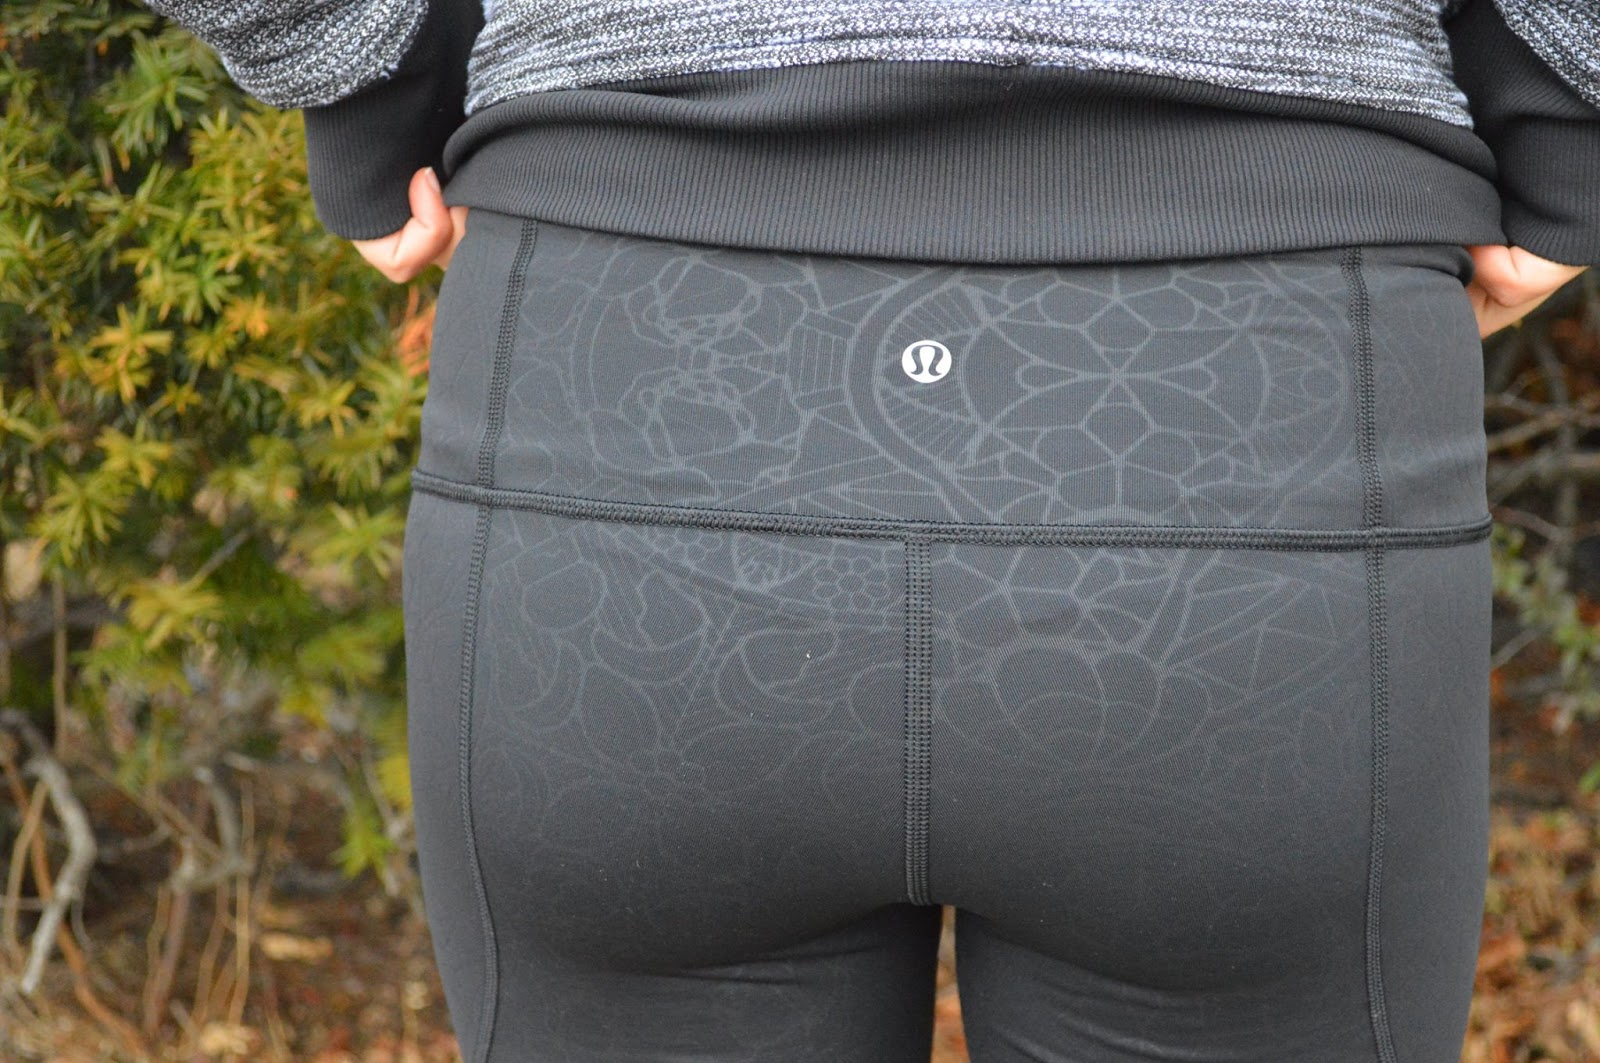 lululemon emerge renewed